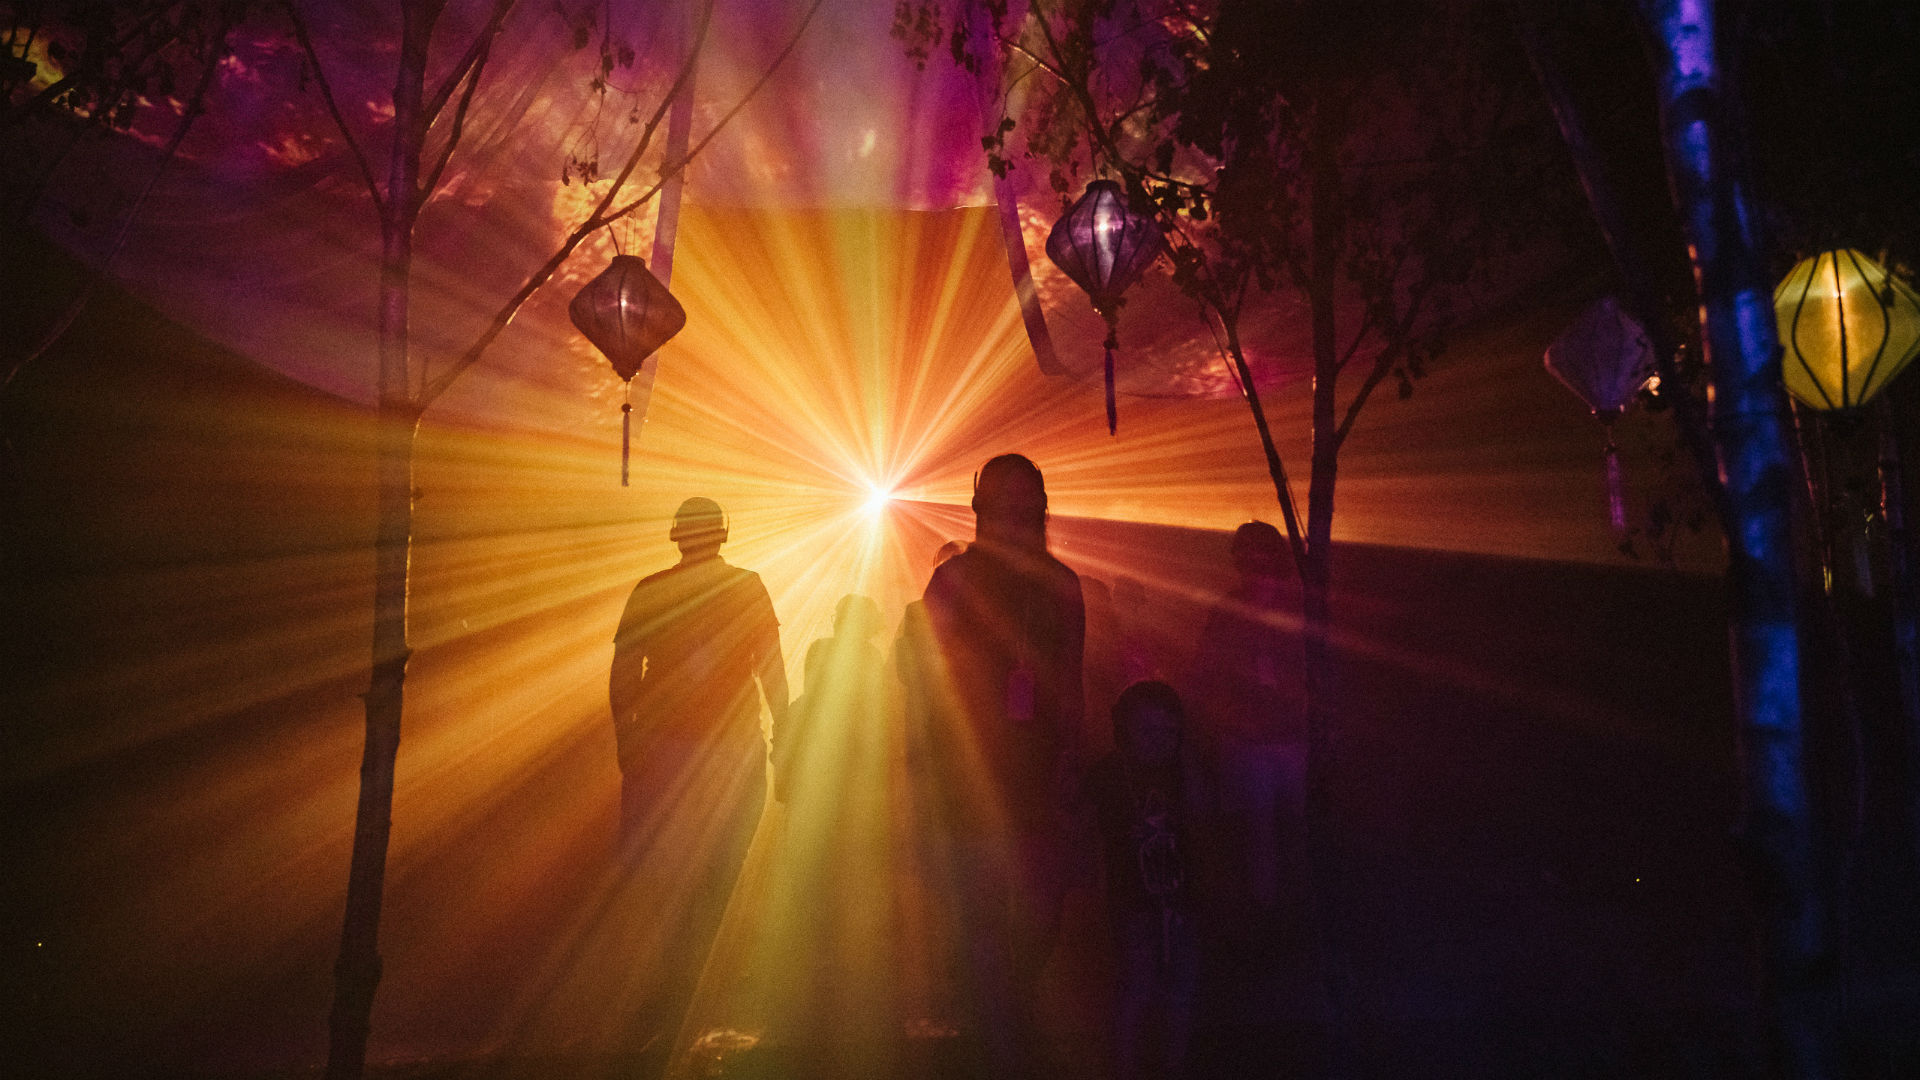 Two people walking into golden light and trees.